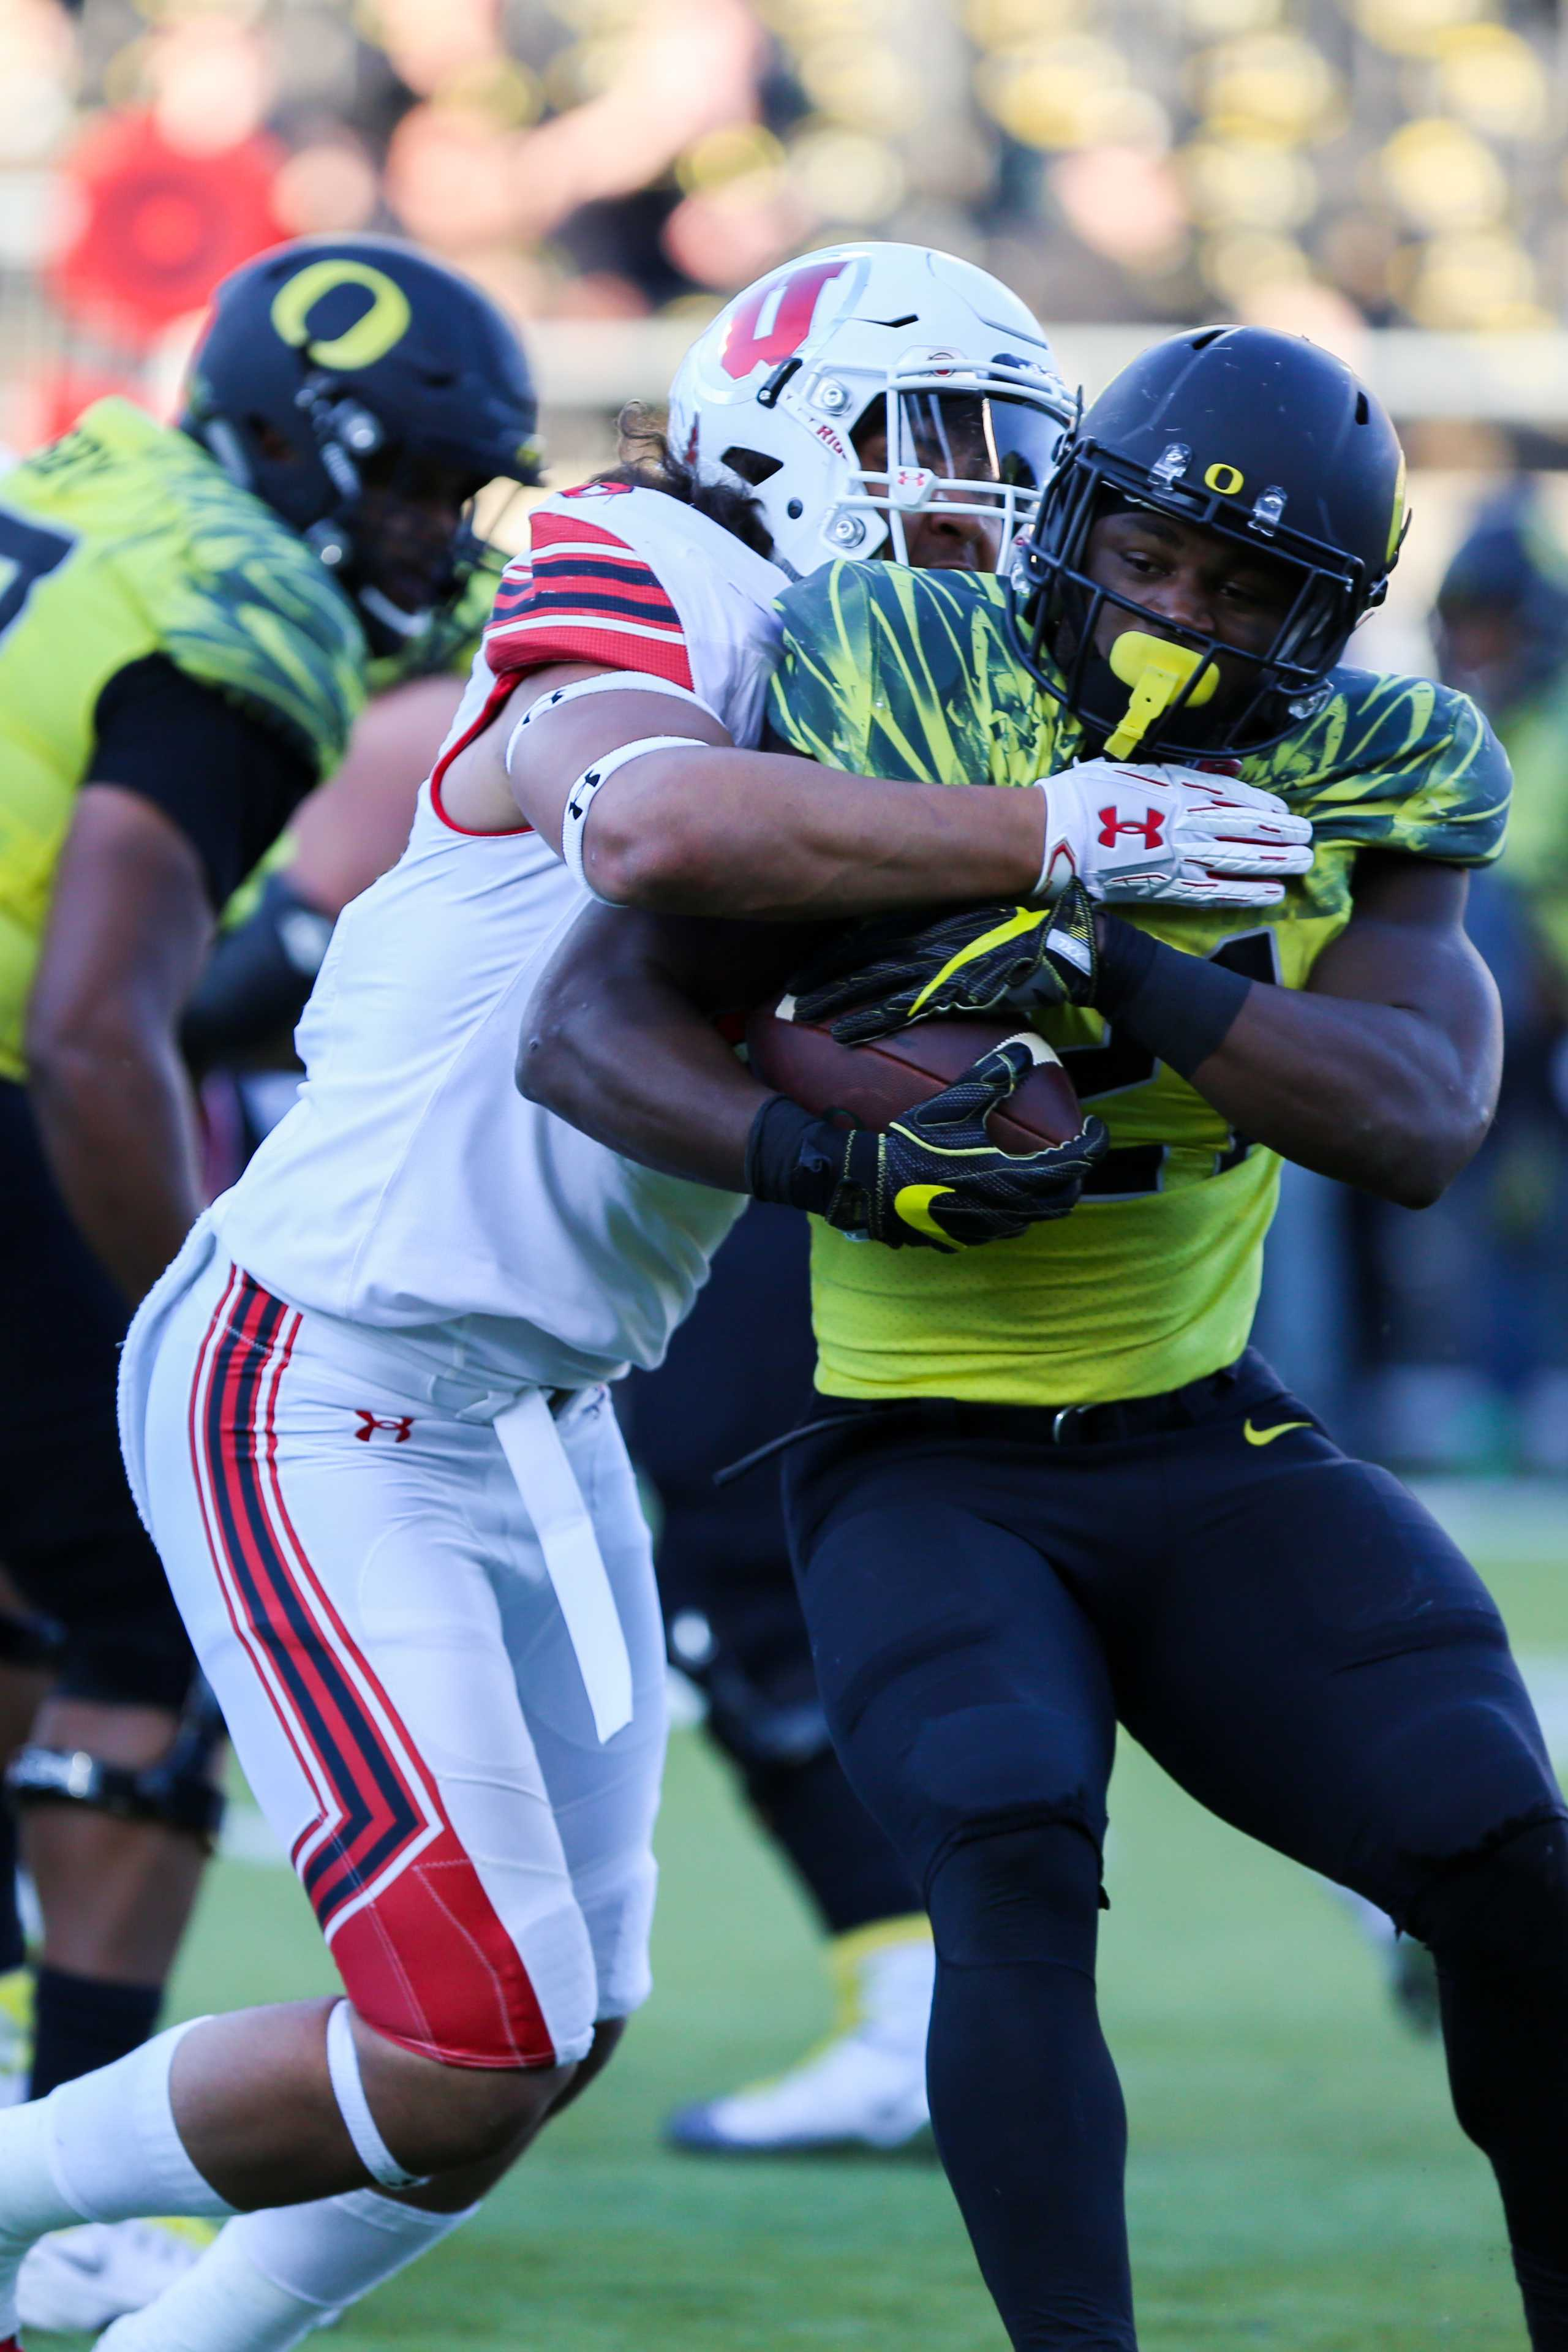 Sophomore defensive end Bradley Anae (6) tackles an Oregon running back as the The Utah Utes Football team take on the Oregon Ducks at Autzen Stadium in Eugene, OR on Saturday, October28, 2017.   (Photo by Curtis Lin/Daily Utah Chronicle)